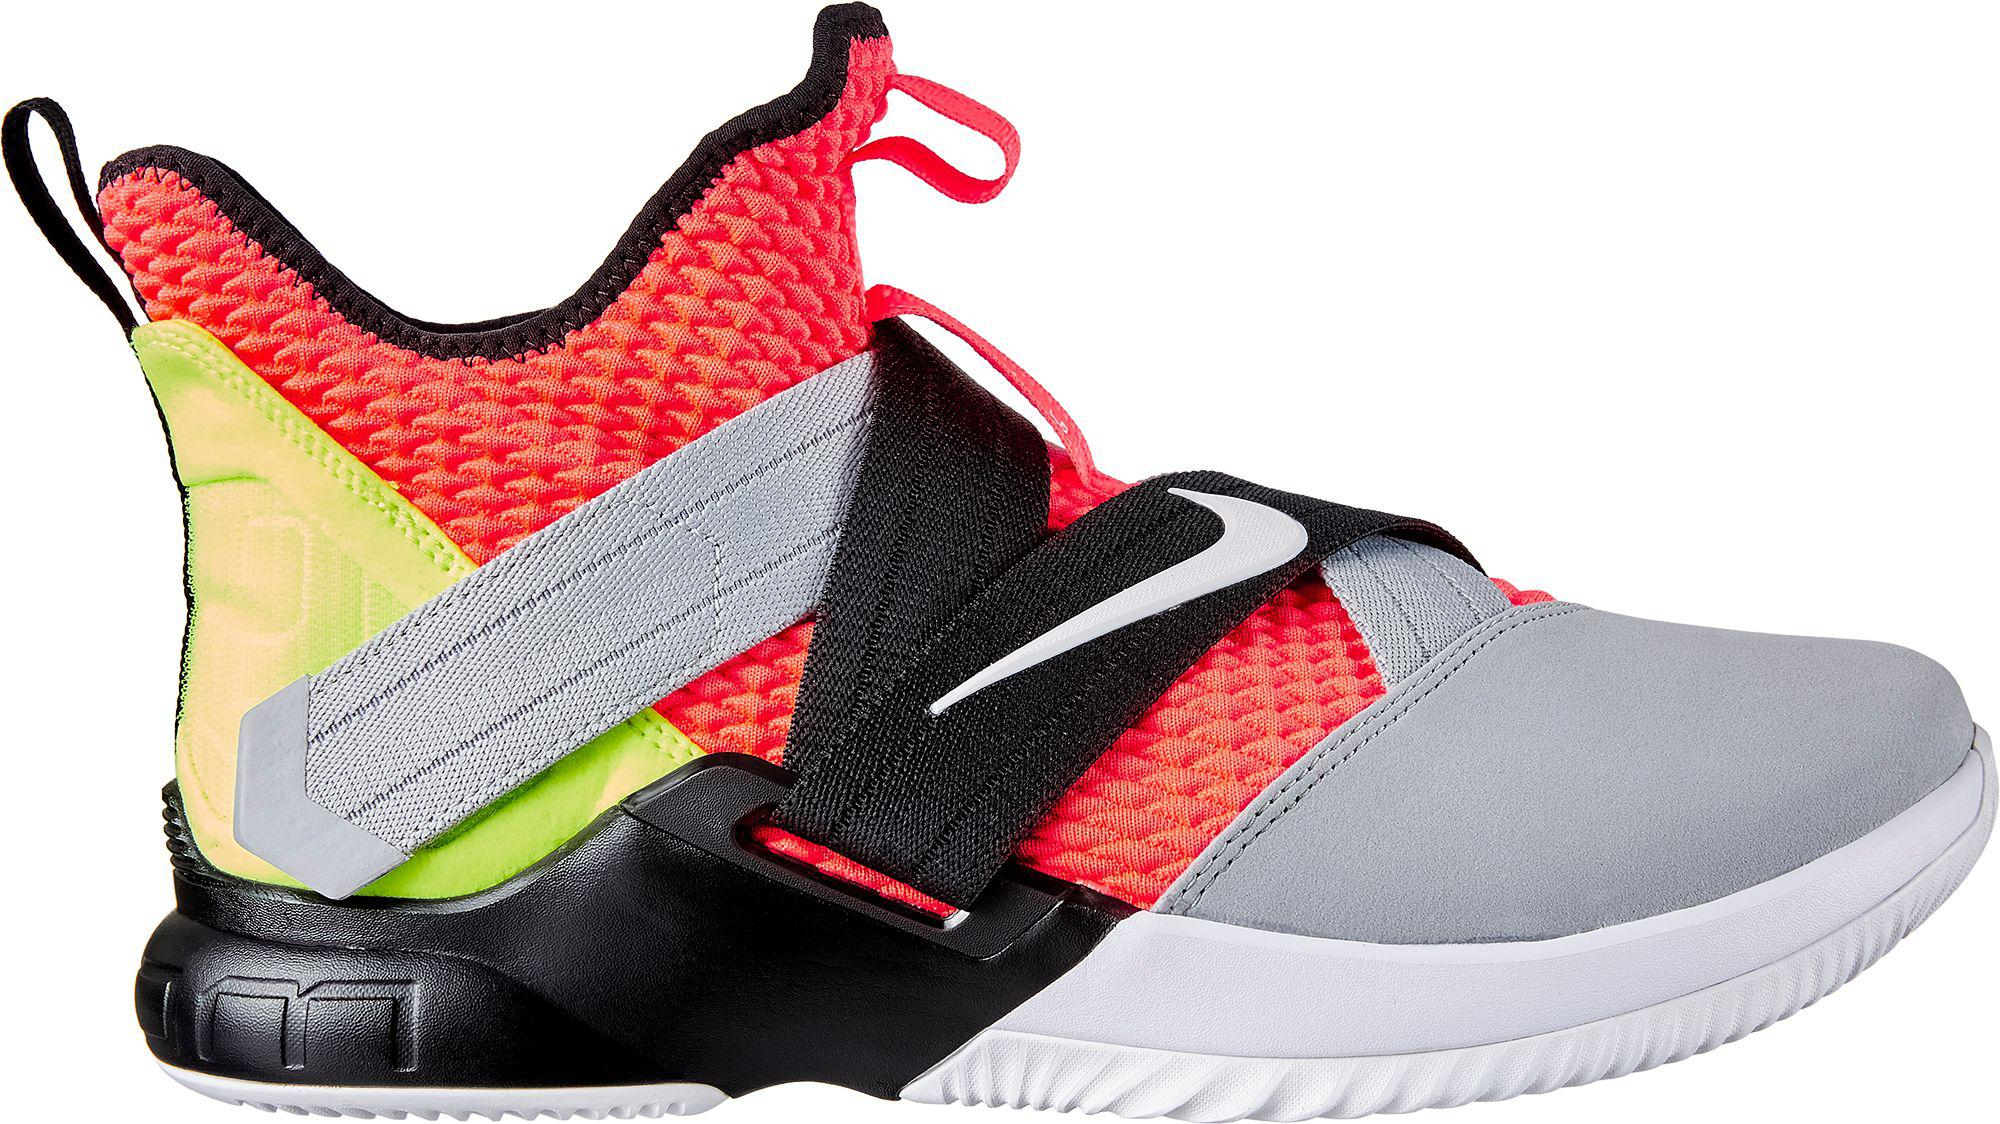 8ccbb0d0d3640 Nike - Multicolor Zoom Lebron Soldier Xii Sfg Basketball Shoes for Men -  Lyst